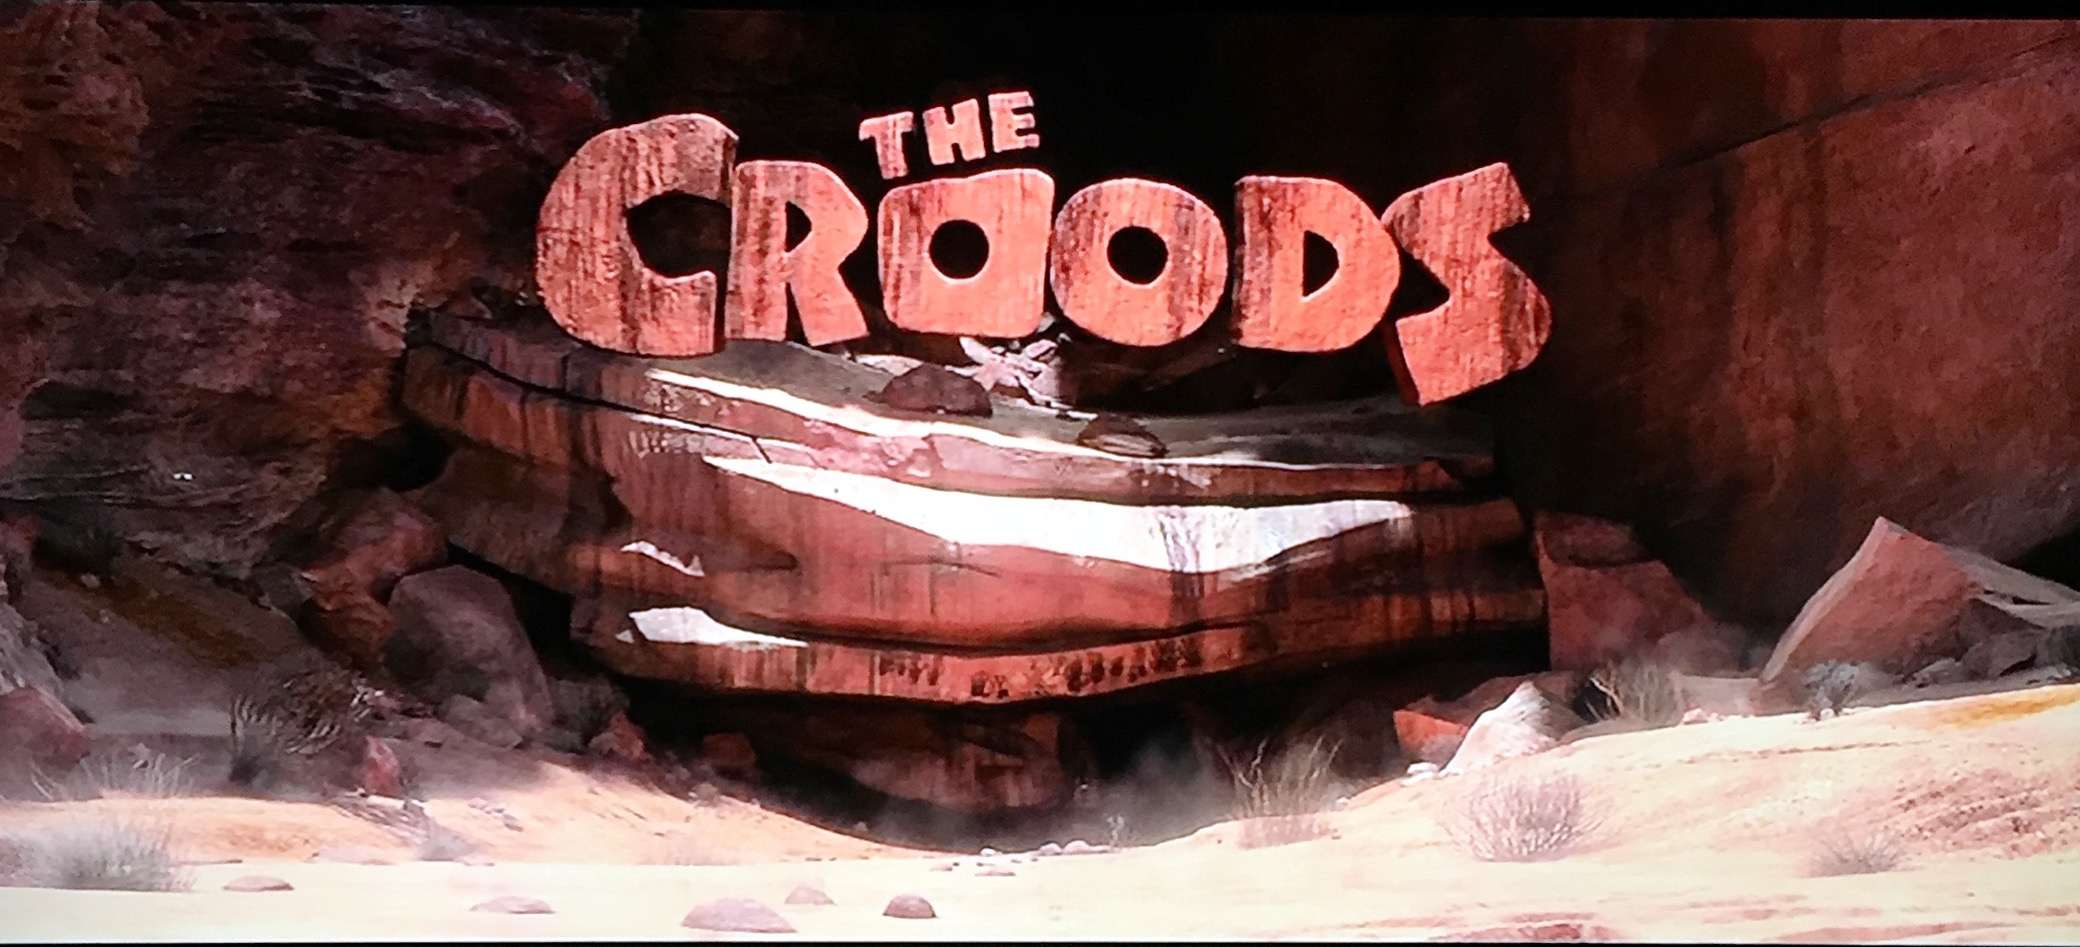 The Croods 2013 Caveman Cage Mike S Review The Cageclub Podcast Network